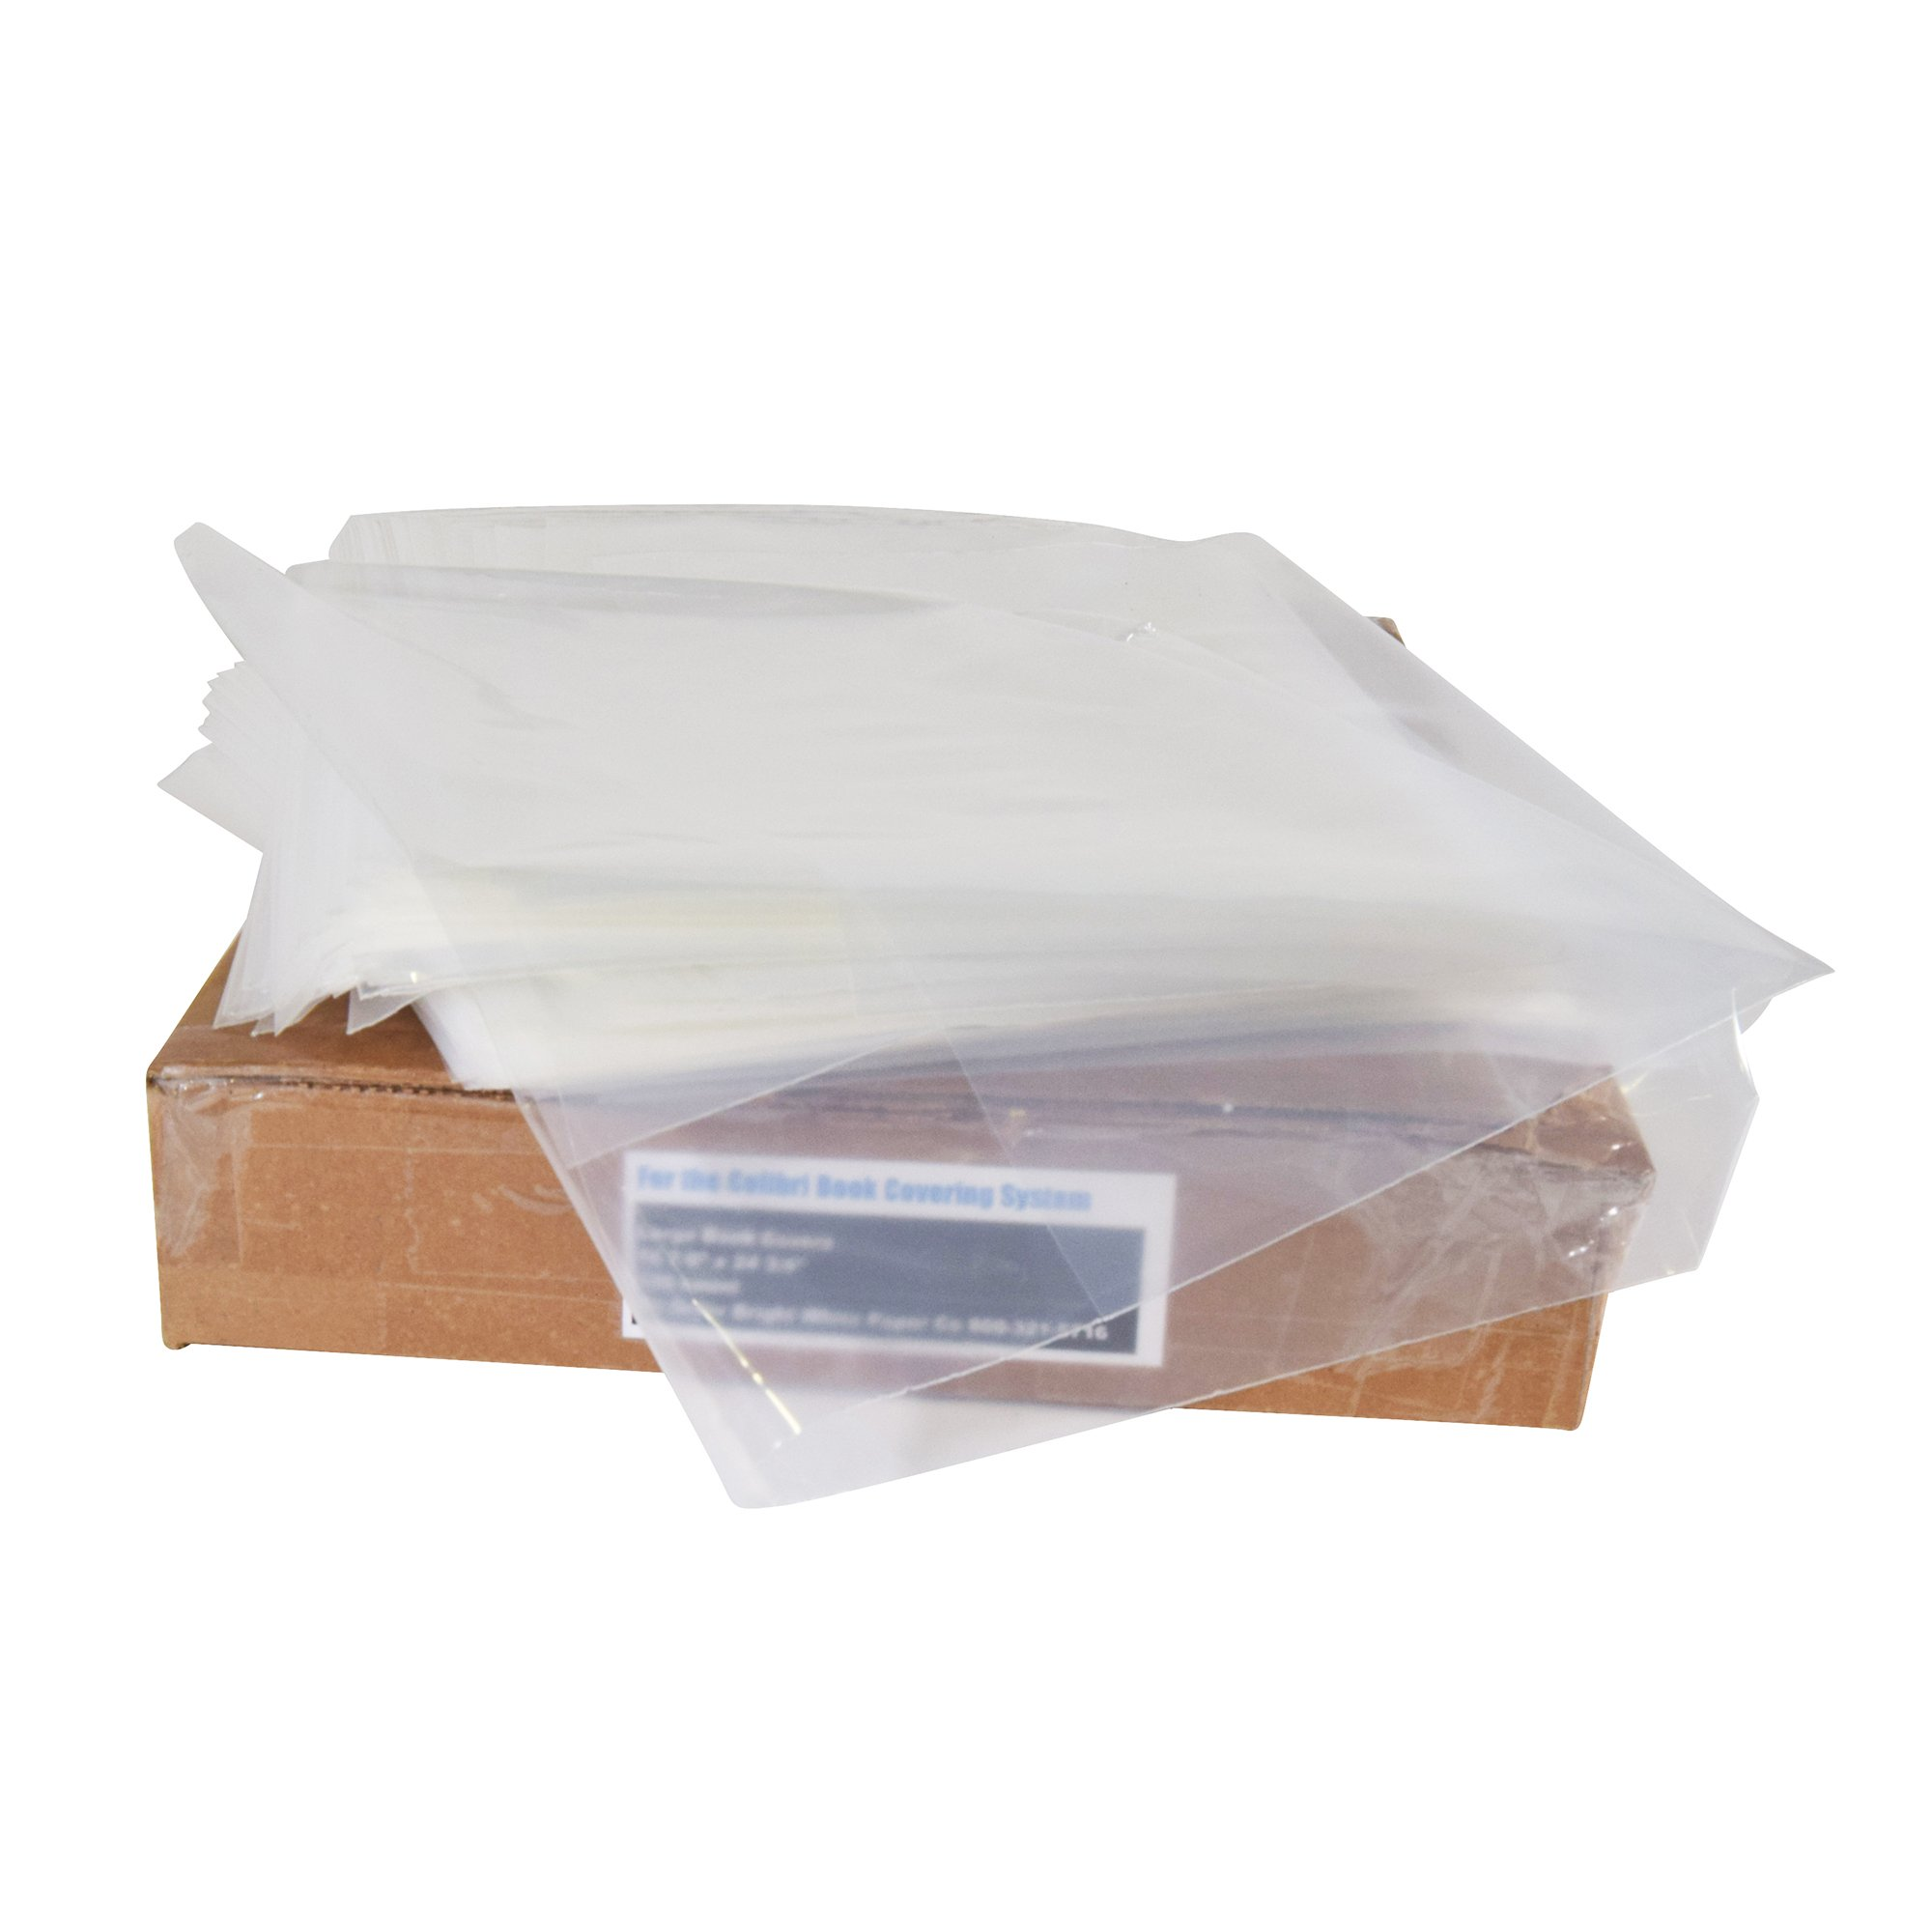 Large Book Covering Jackets for Colibri Book Covering System